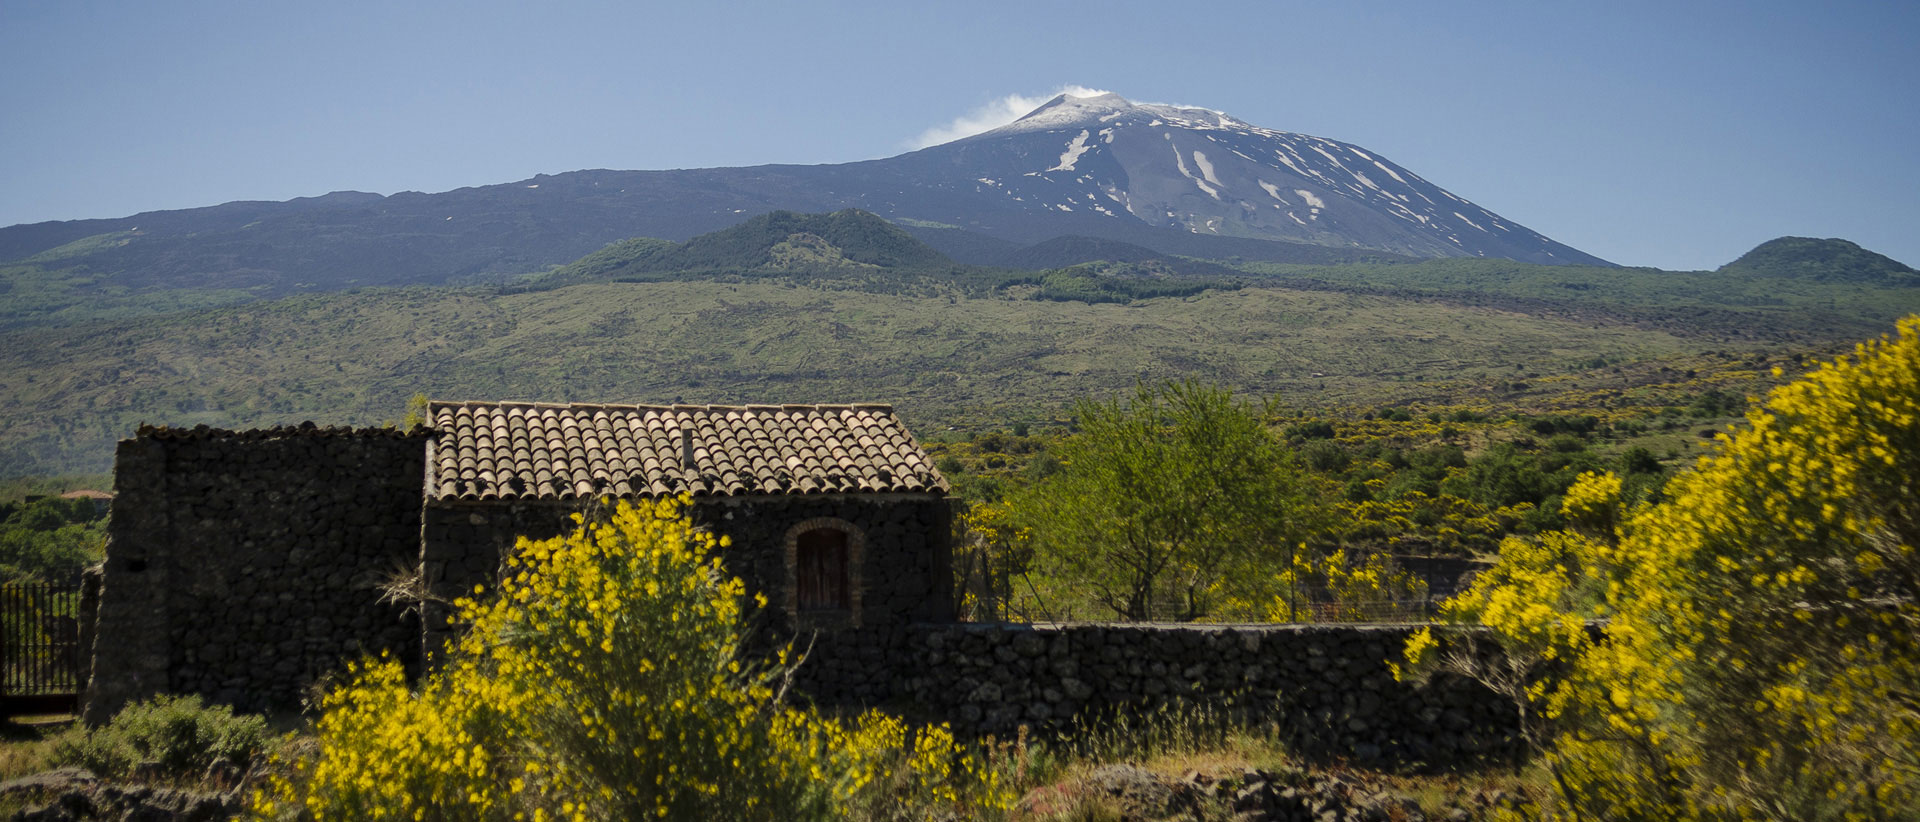 explore the valleys of etna!